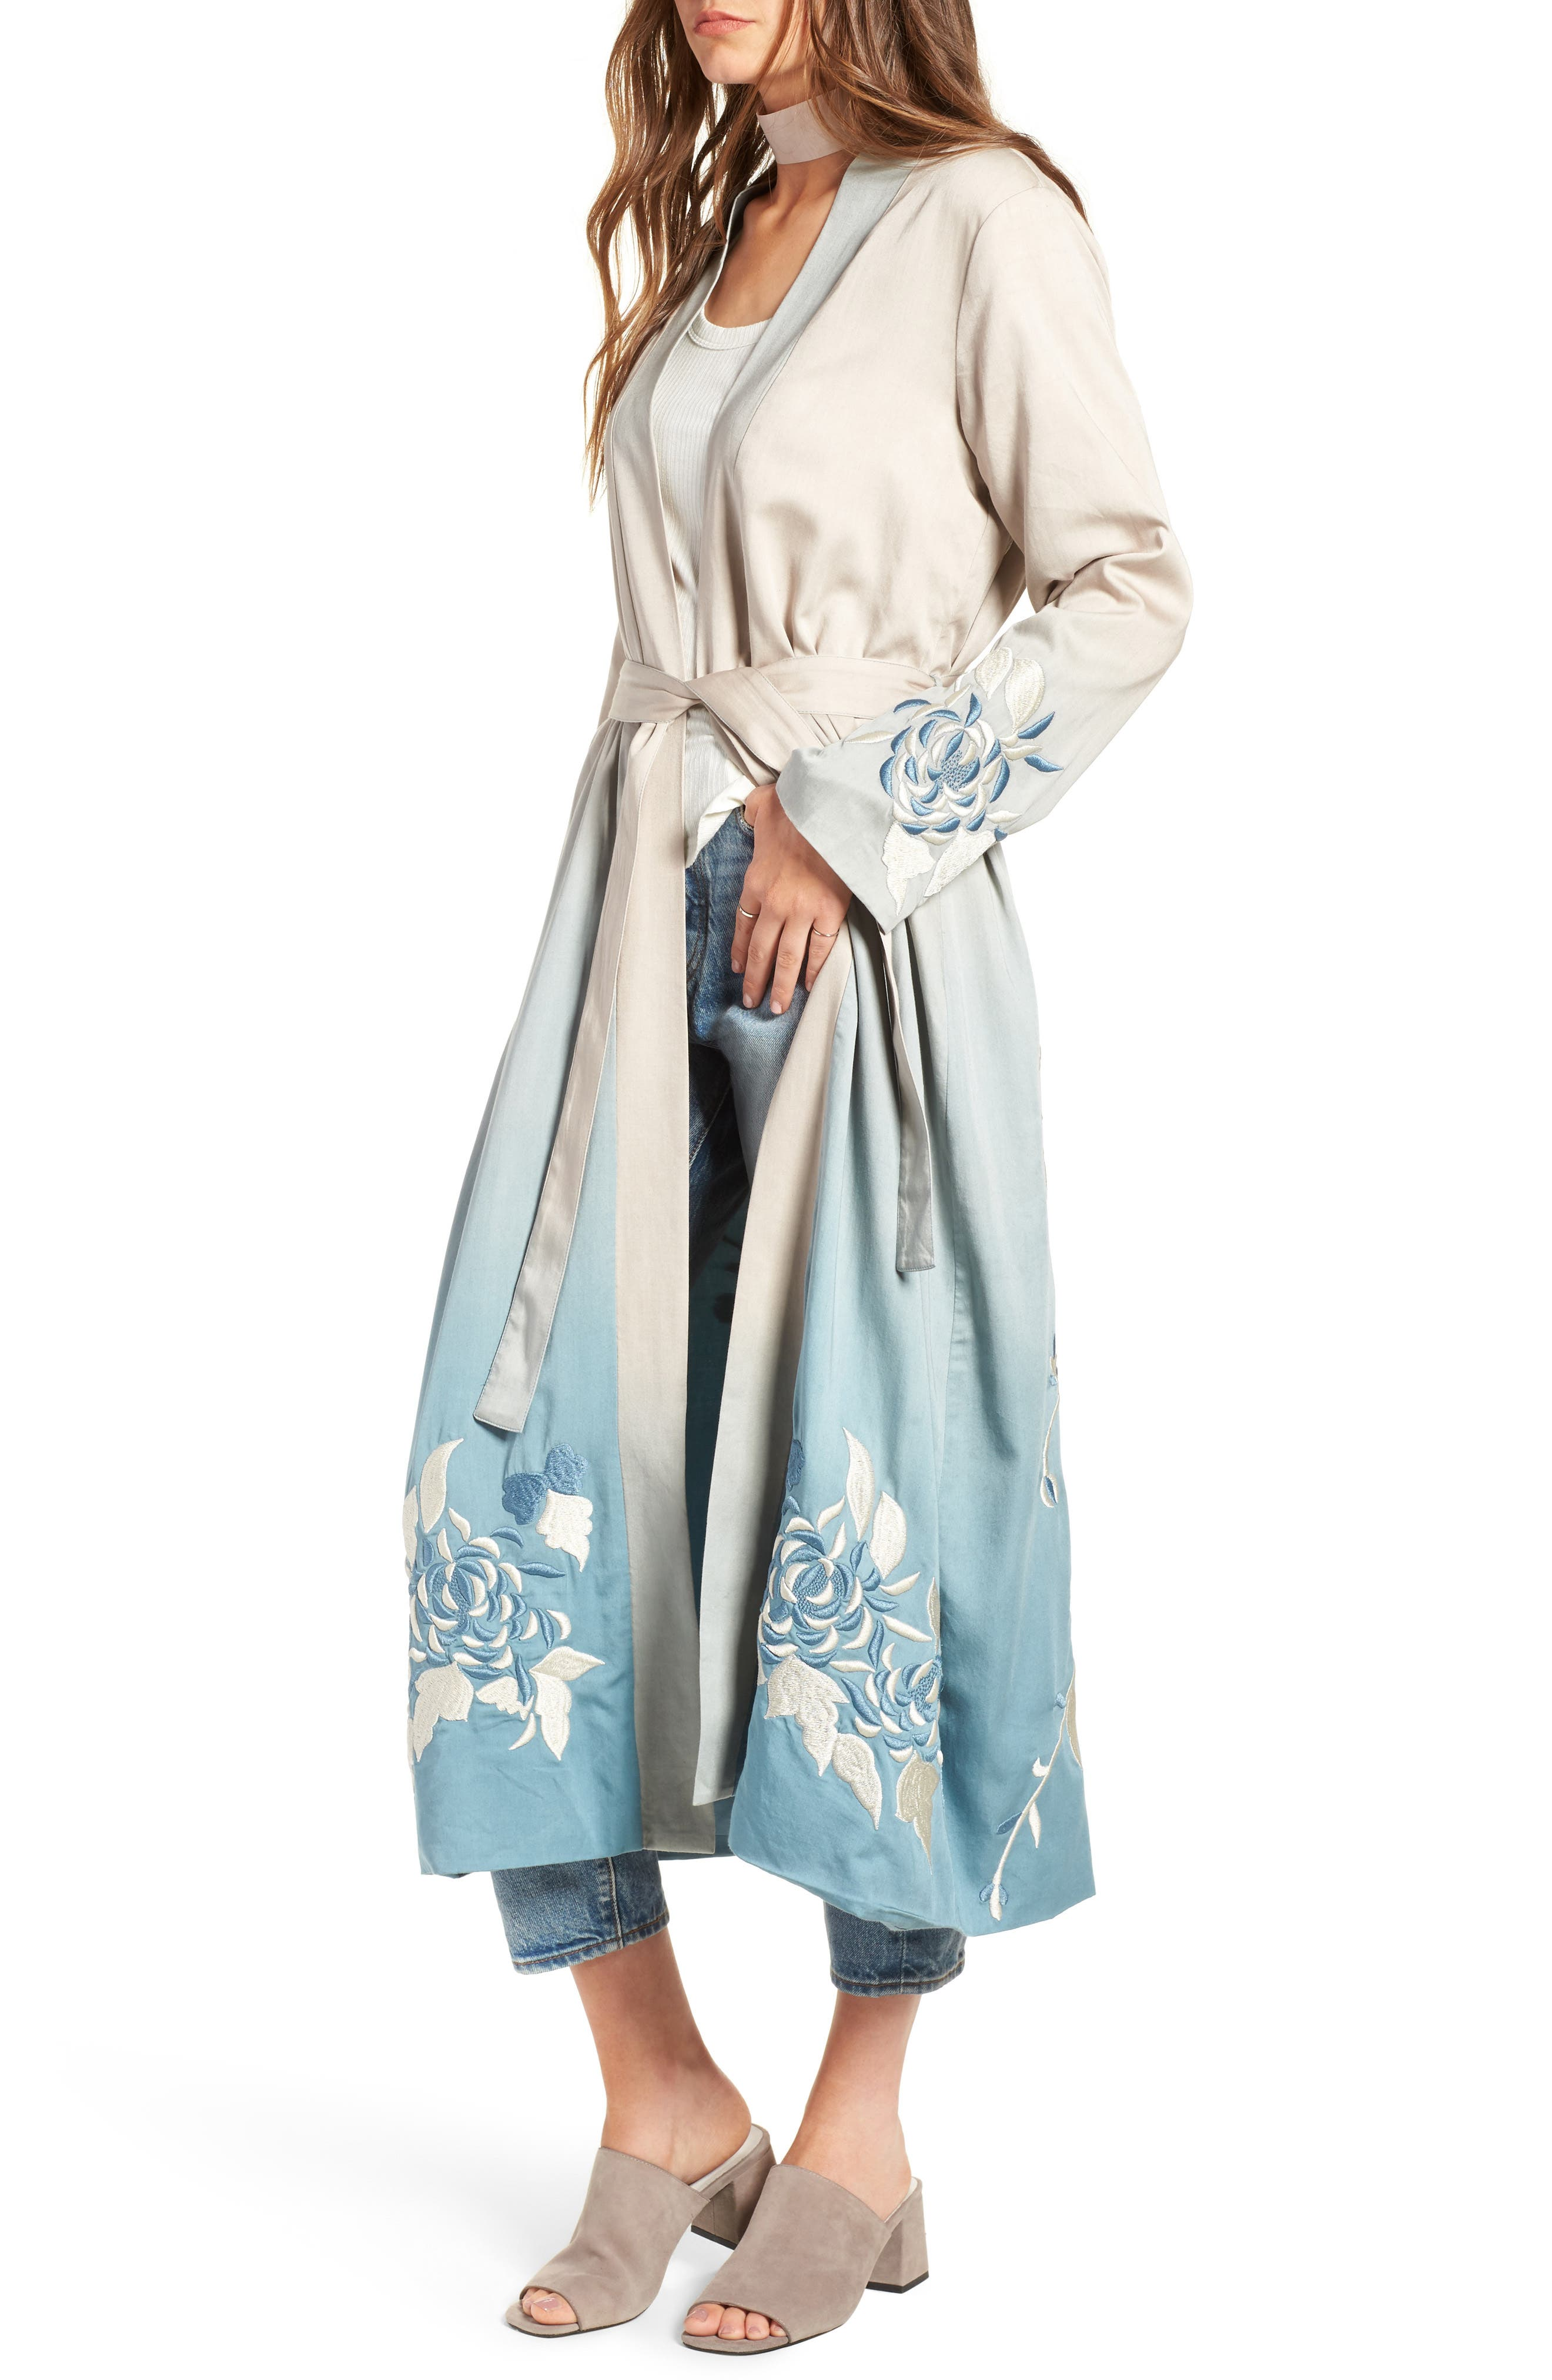 Silversage Embroidered Duster Jacket,                             Alternate thumbnail 4, color,                             475